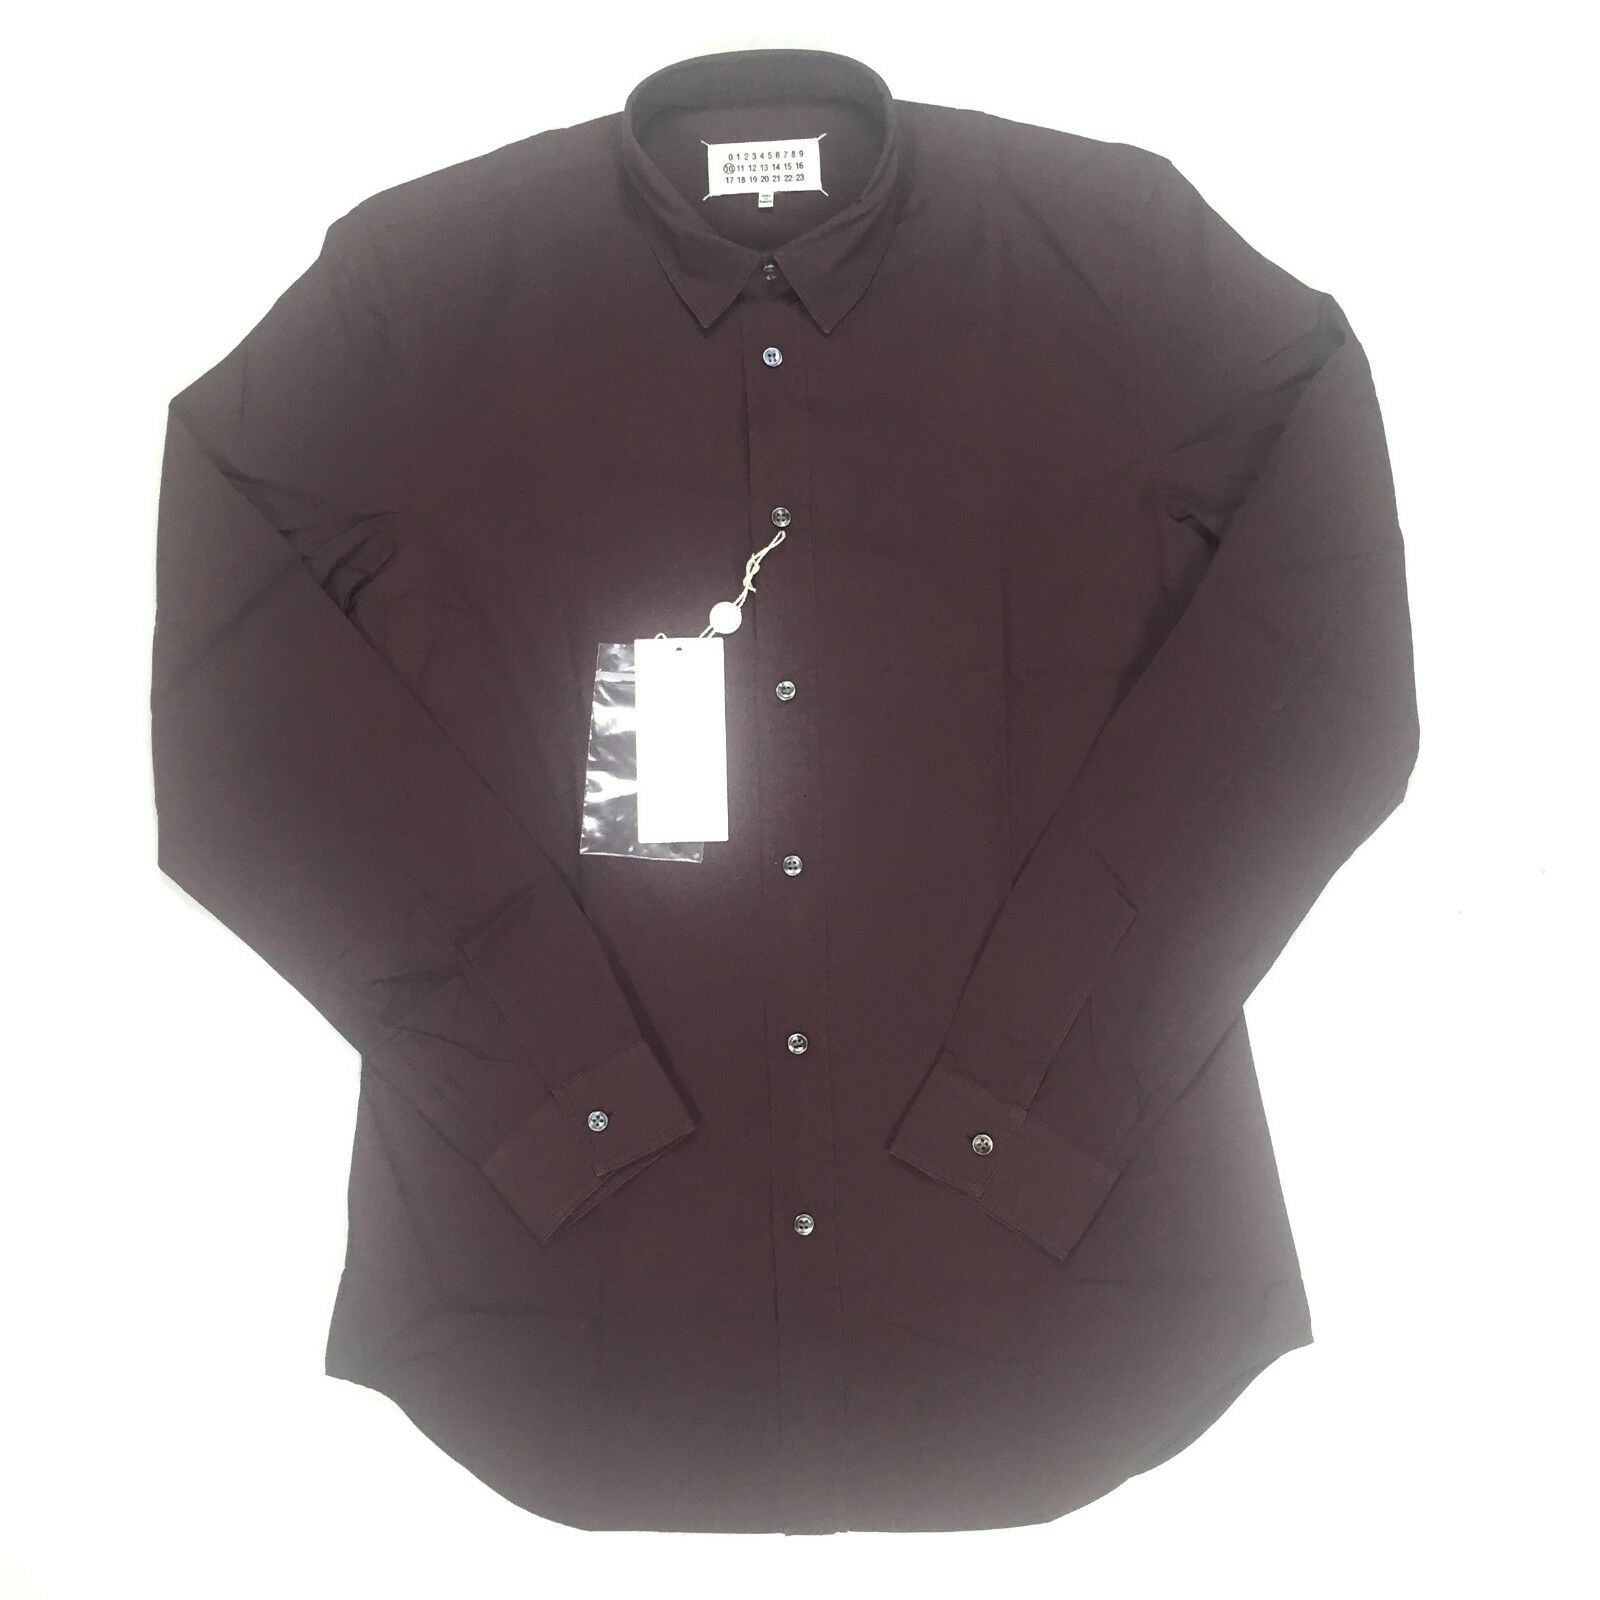 NWT  Maison Martin Margiela Men's Cabernet Red Button Down Shirt AUTHENTIC